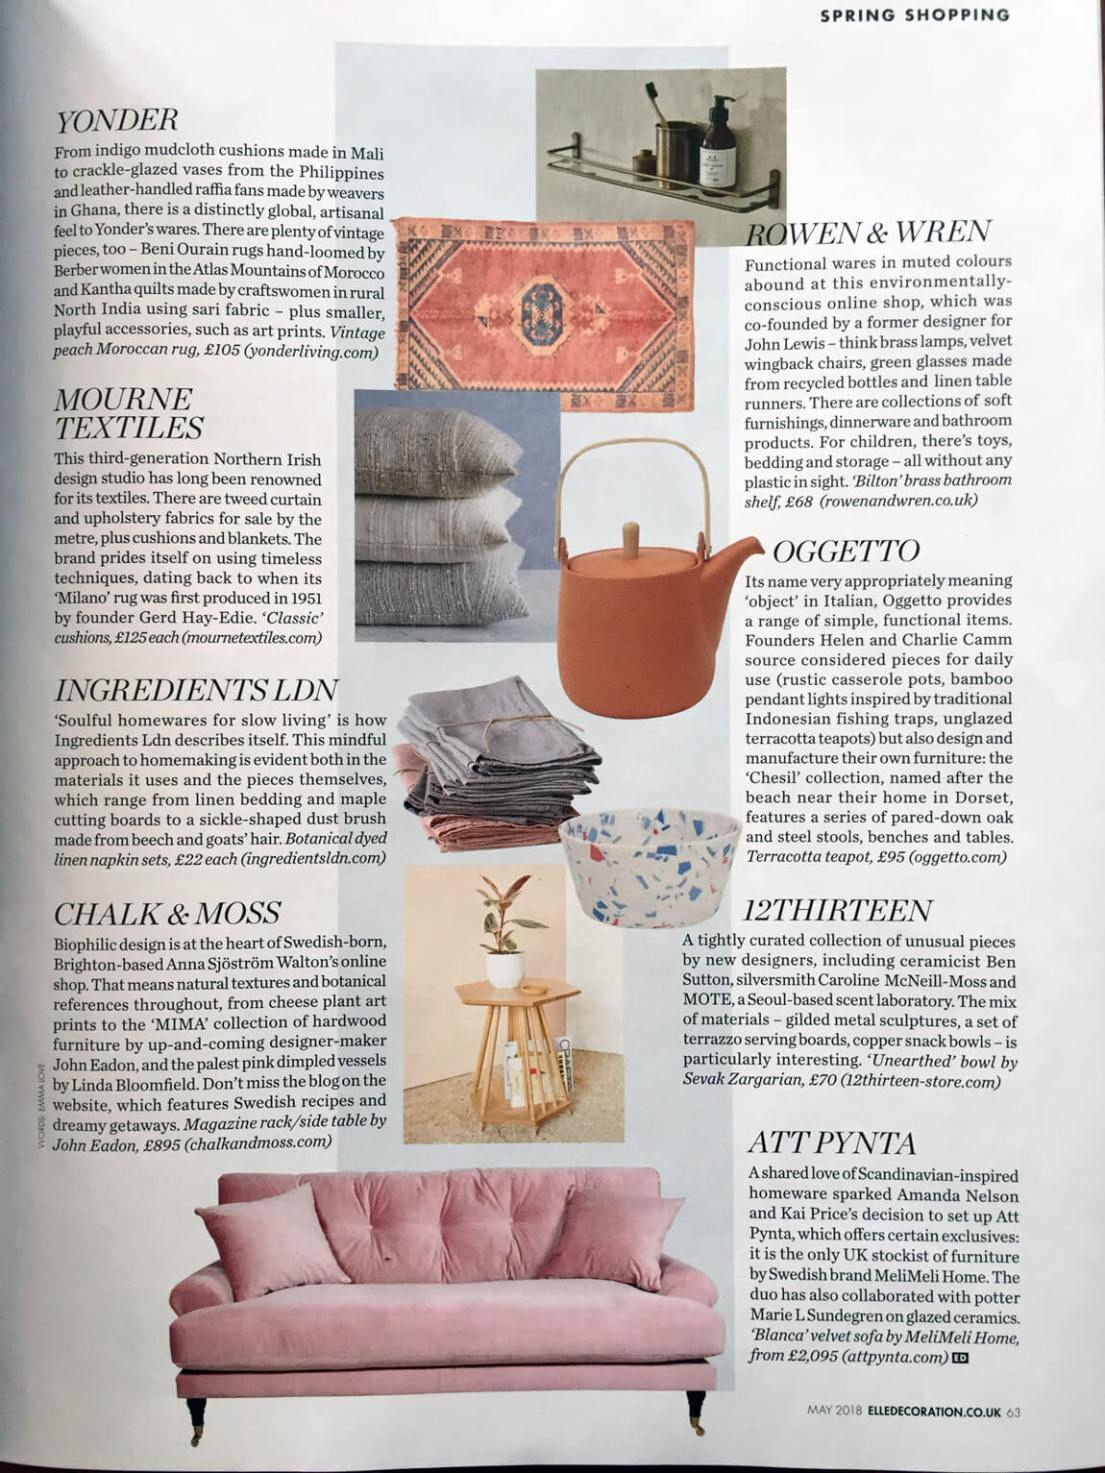 Elle Decoration have featured Chalk & Moss among the best homeware websites in the UK (May 2018 issue). They recommend this shop for the nature connection, pointing particularly to cheese plant prints by Dollybirds Art, pink vessels by Linda Bloomfield and wooden furniture by up-and-coming designer maker John Eadon.